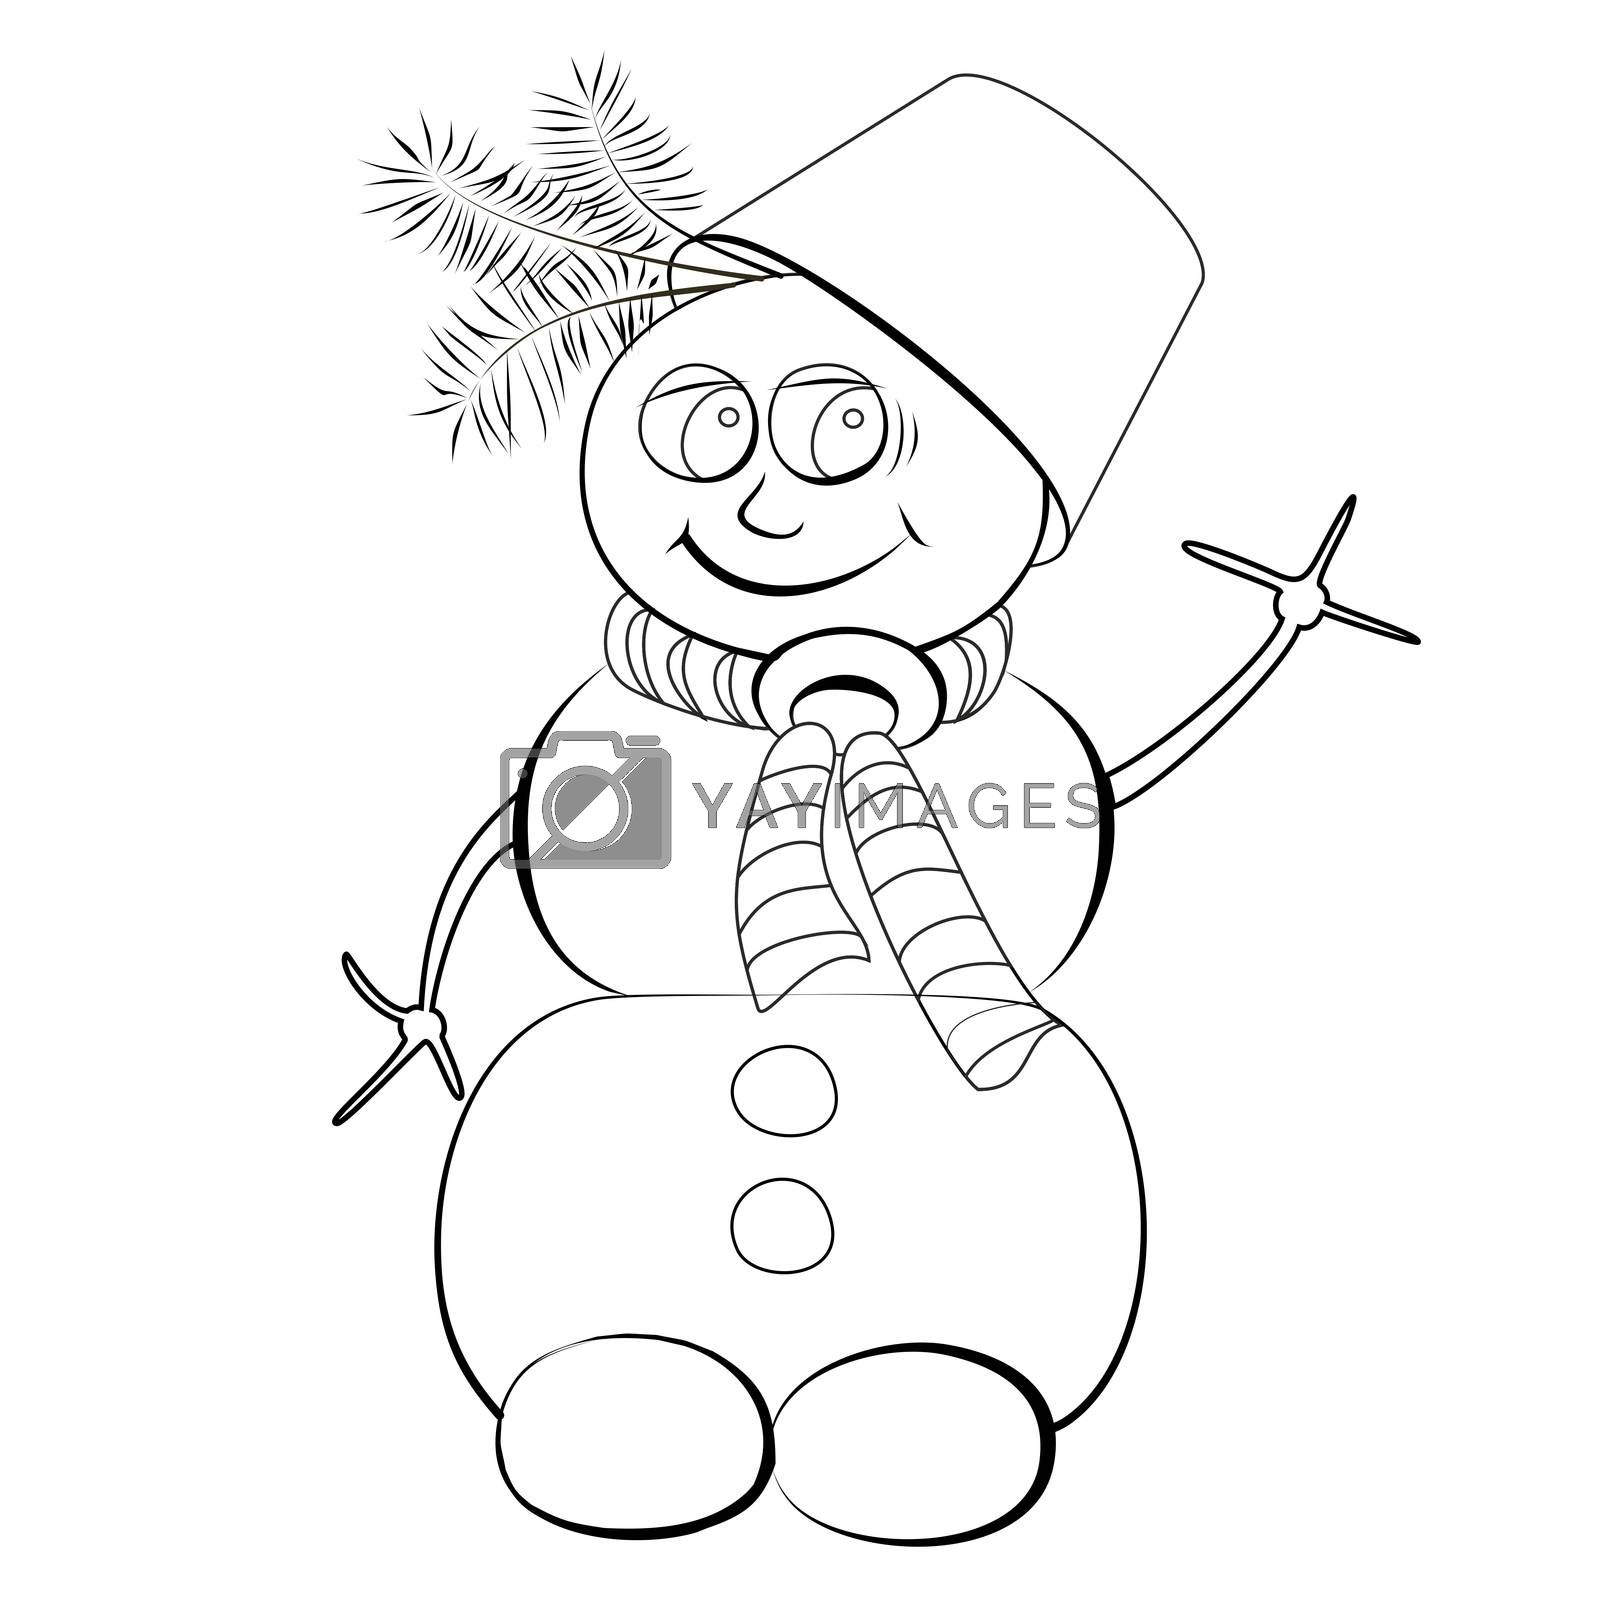 Colorless cheerful snowman with a bucket on his head by Madhourse